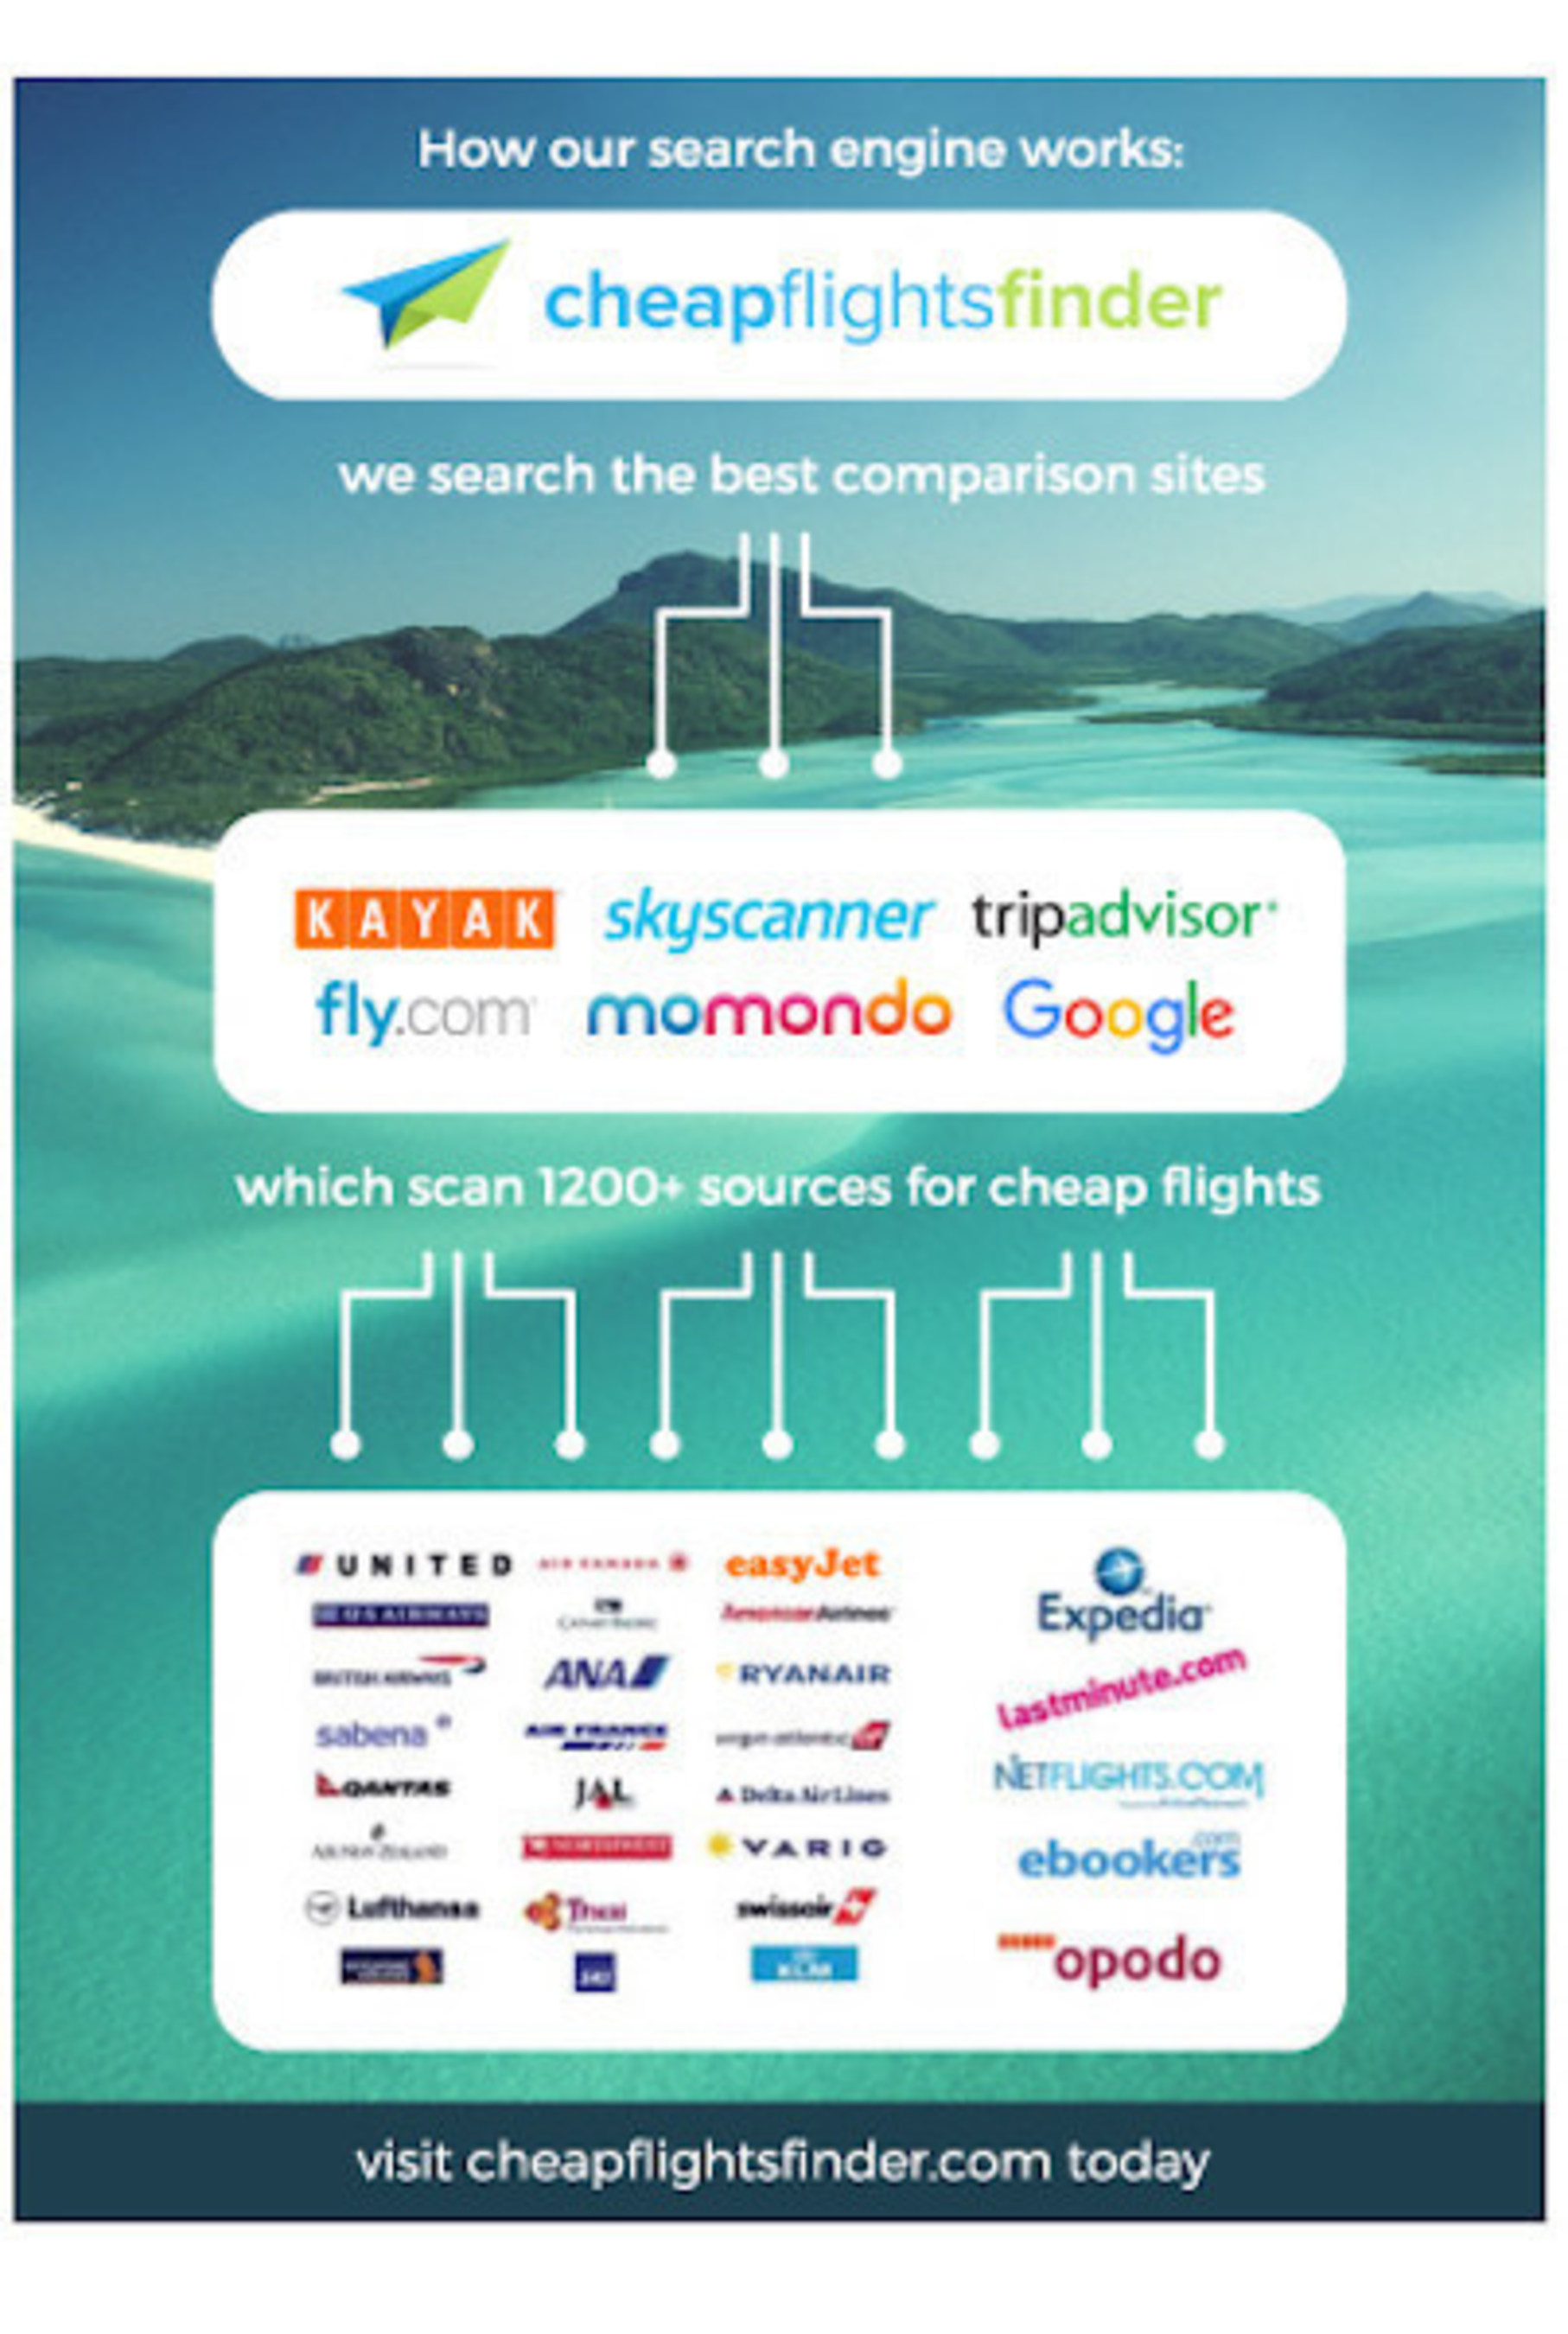 CheapFlightsFinder Introduces World's First Meta-Meta Flight Search(R) Dashboard to Instantly Find Rock-bottom Fares Across Leading Comparison Sites Like Google Flights and KAYAK